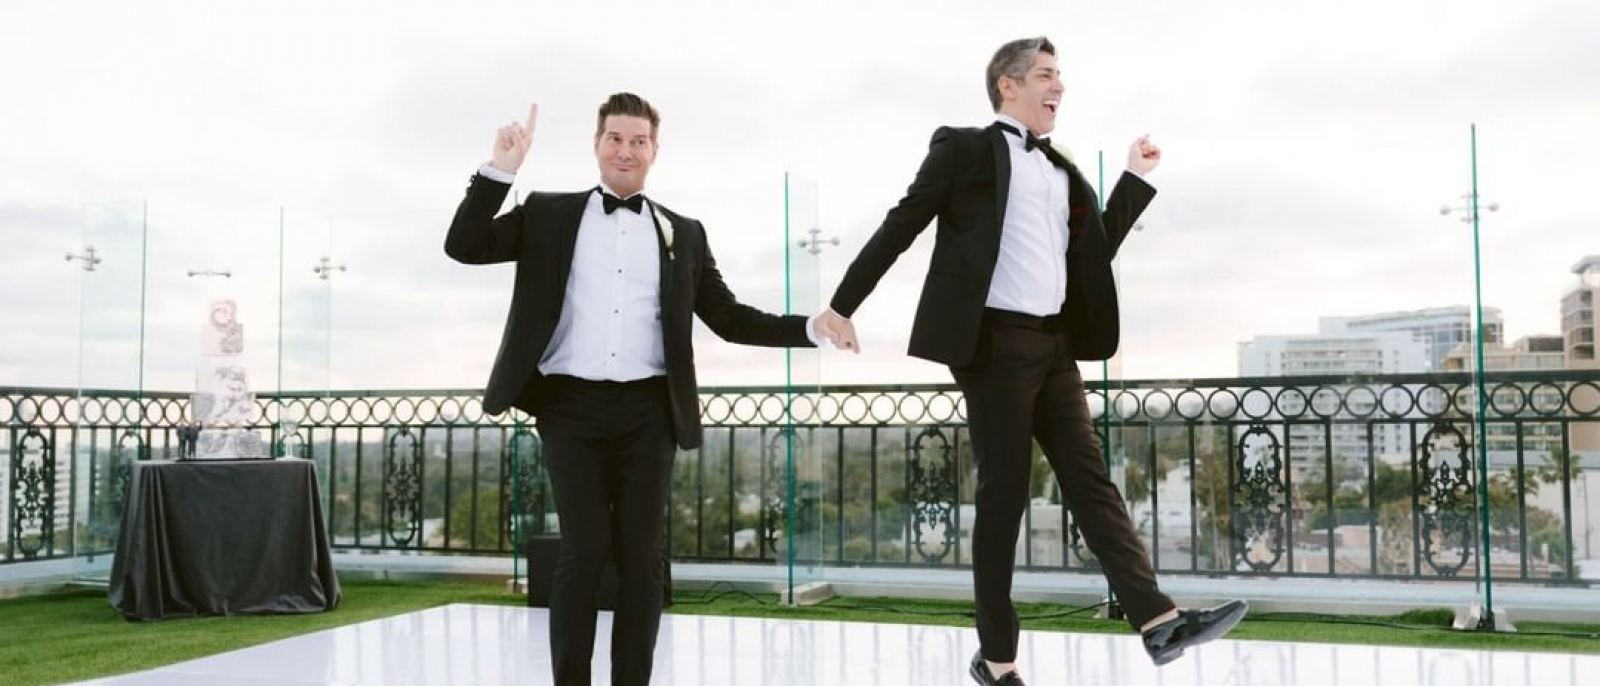 The London West Hollywood wedding gay couple